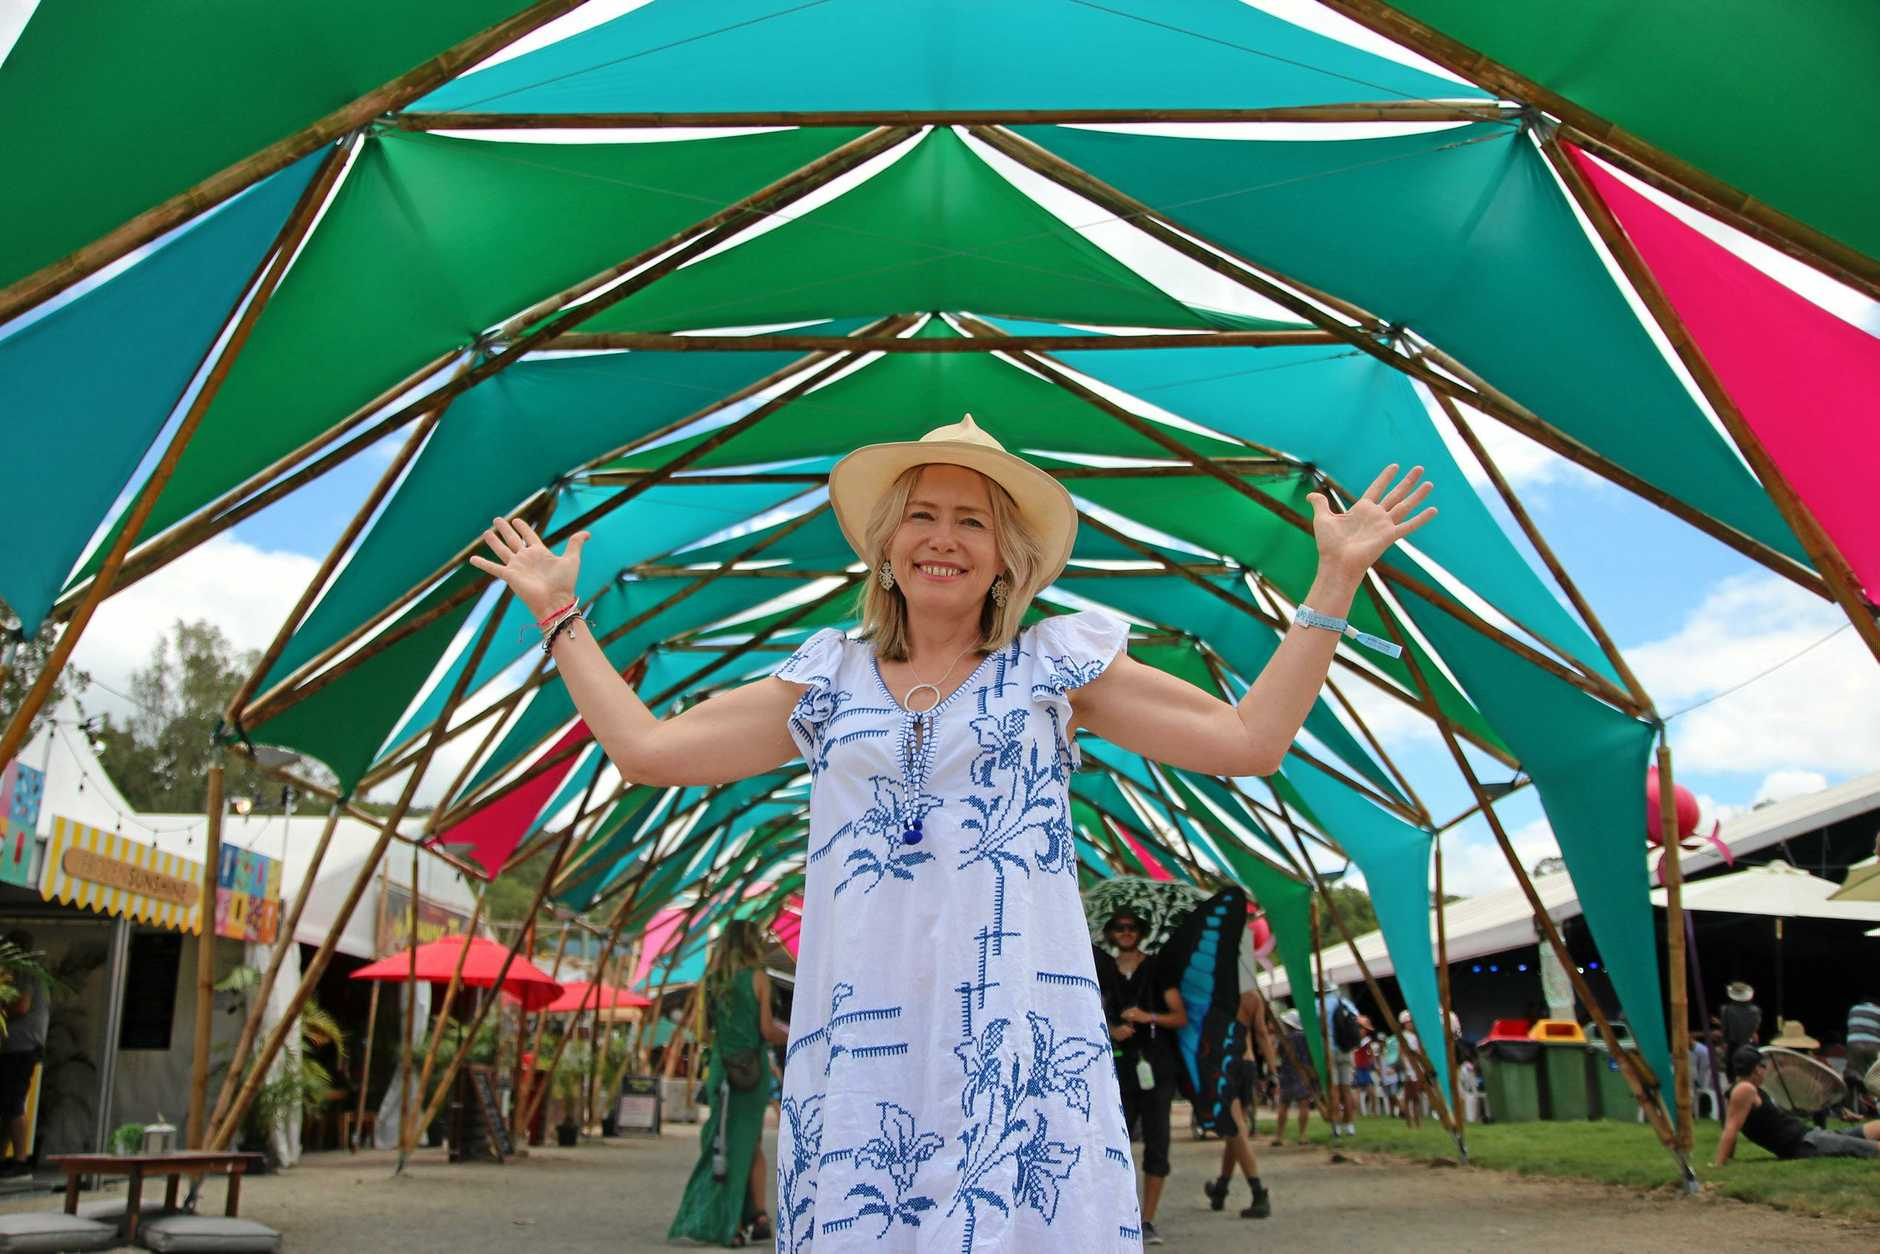 Woodford Folk Festival general manager Amanda Jackes was gearing up for the best festival yet.